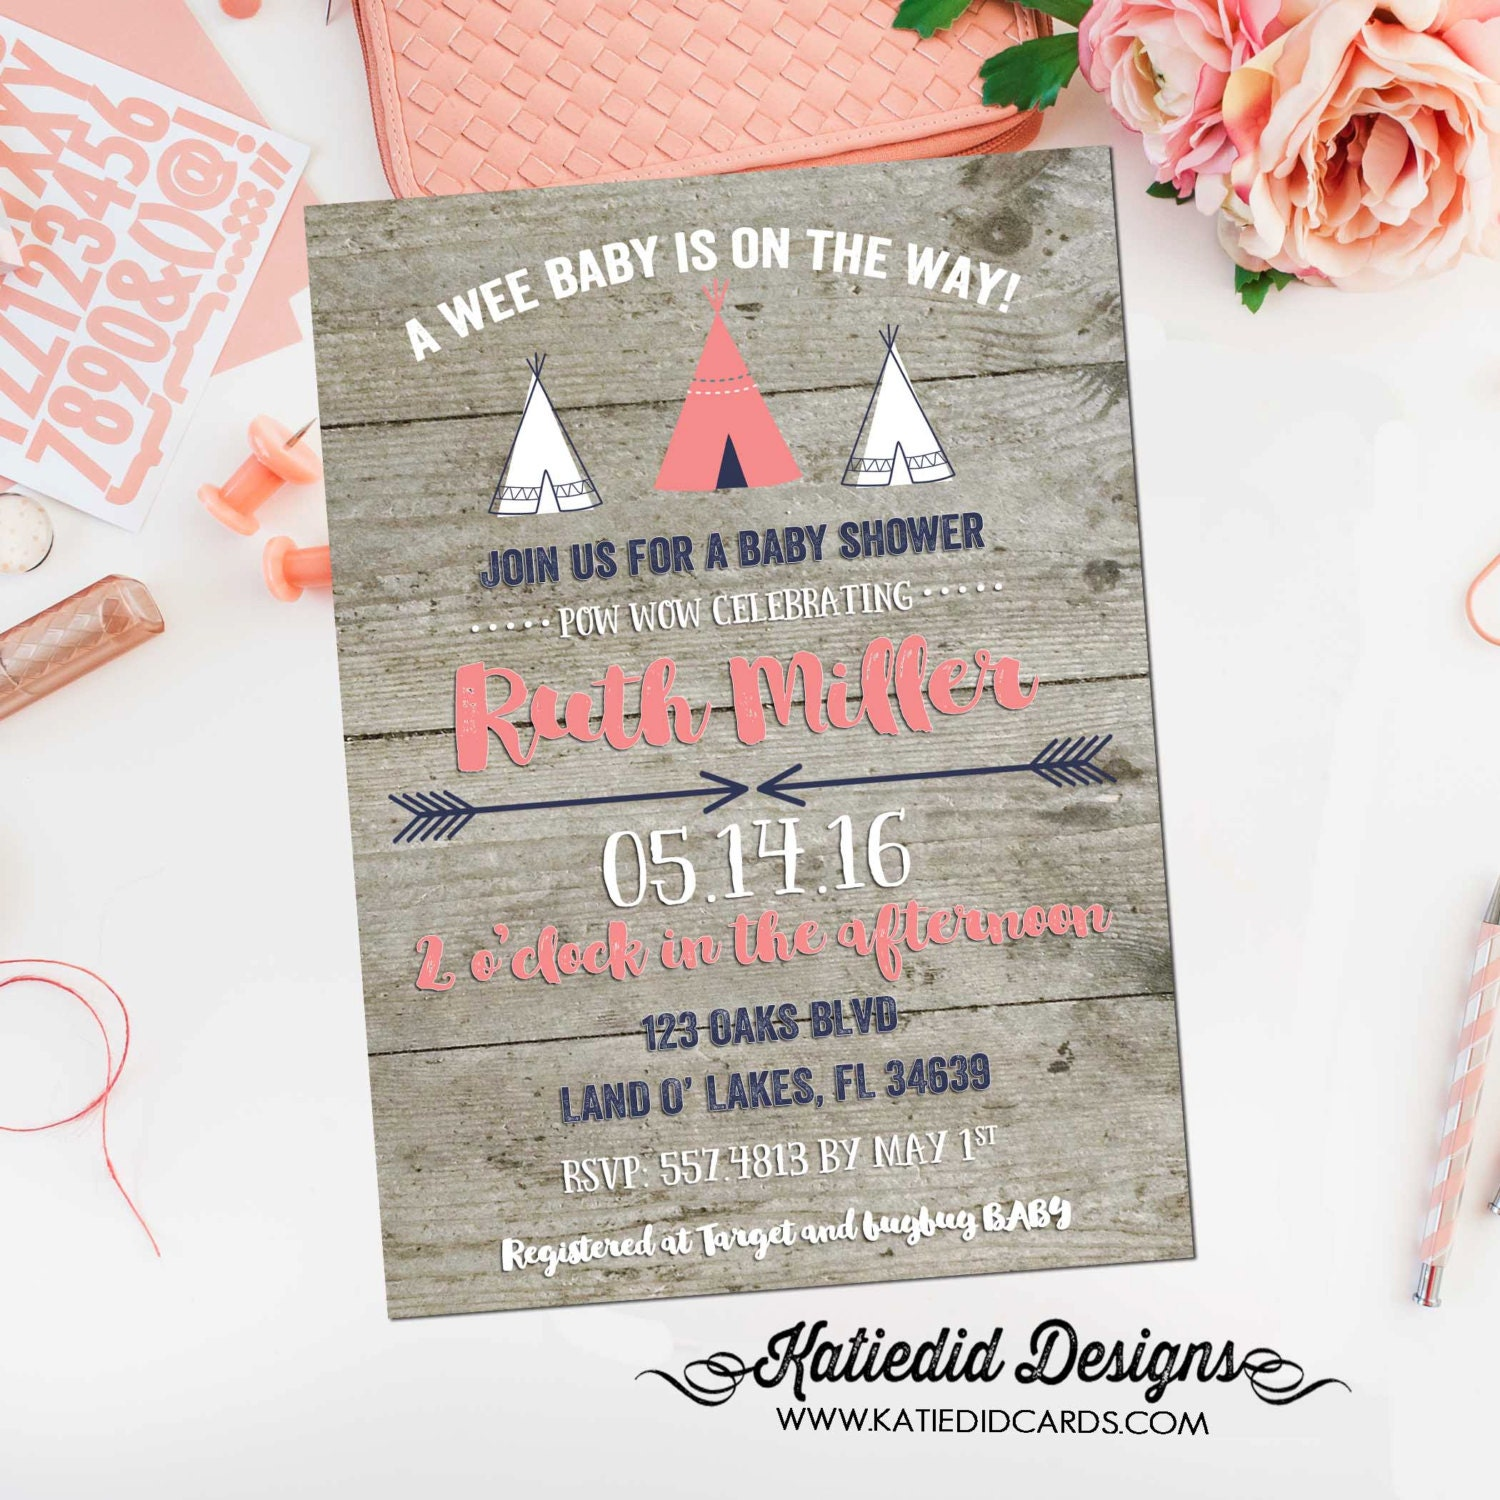 Rustic Baby Girl Shower Invitation Boho Tribal Teepee Coral Navy Wood Diaper Wipe Brunch 1453 Katiedid Design